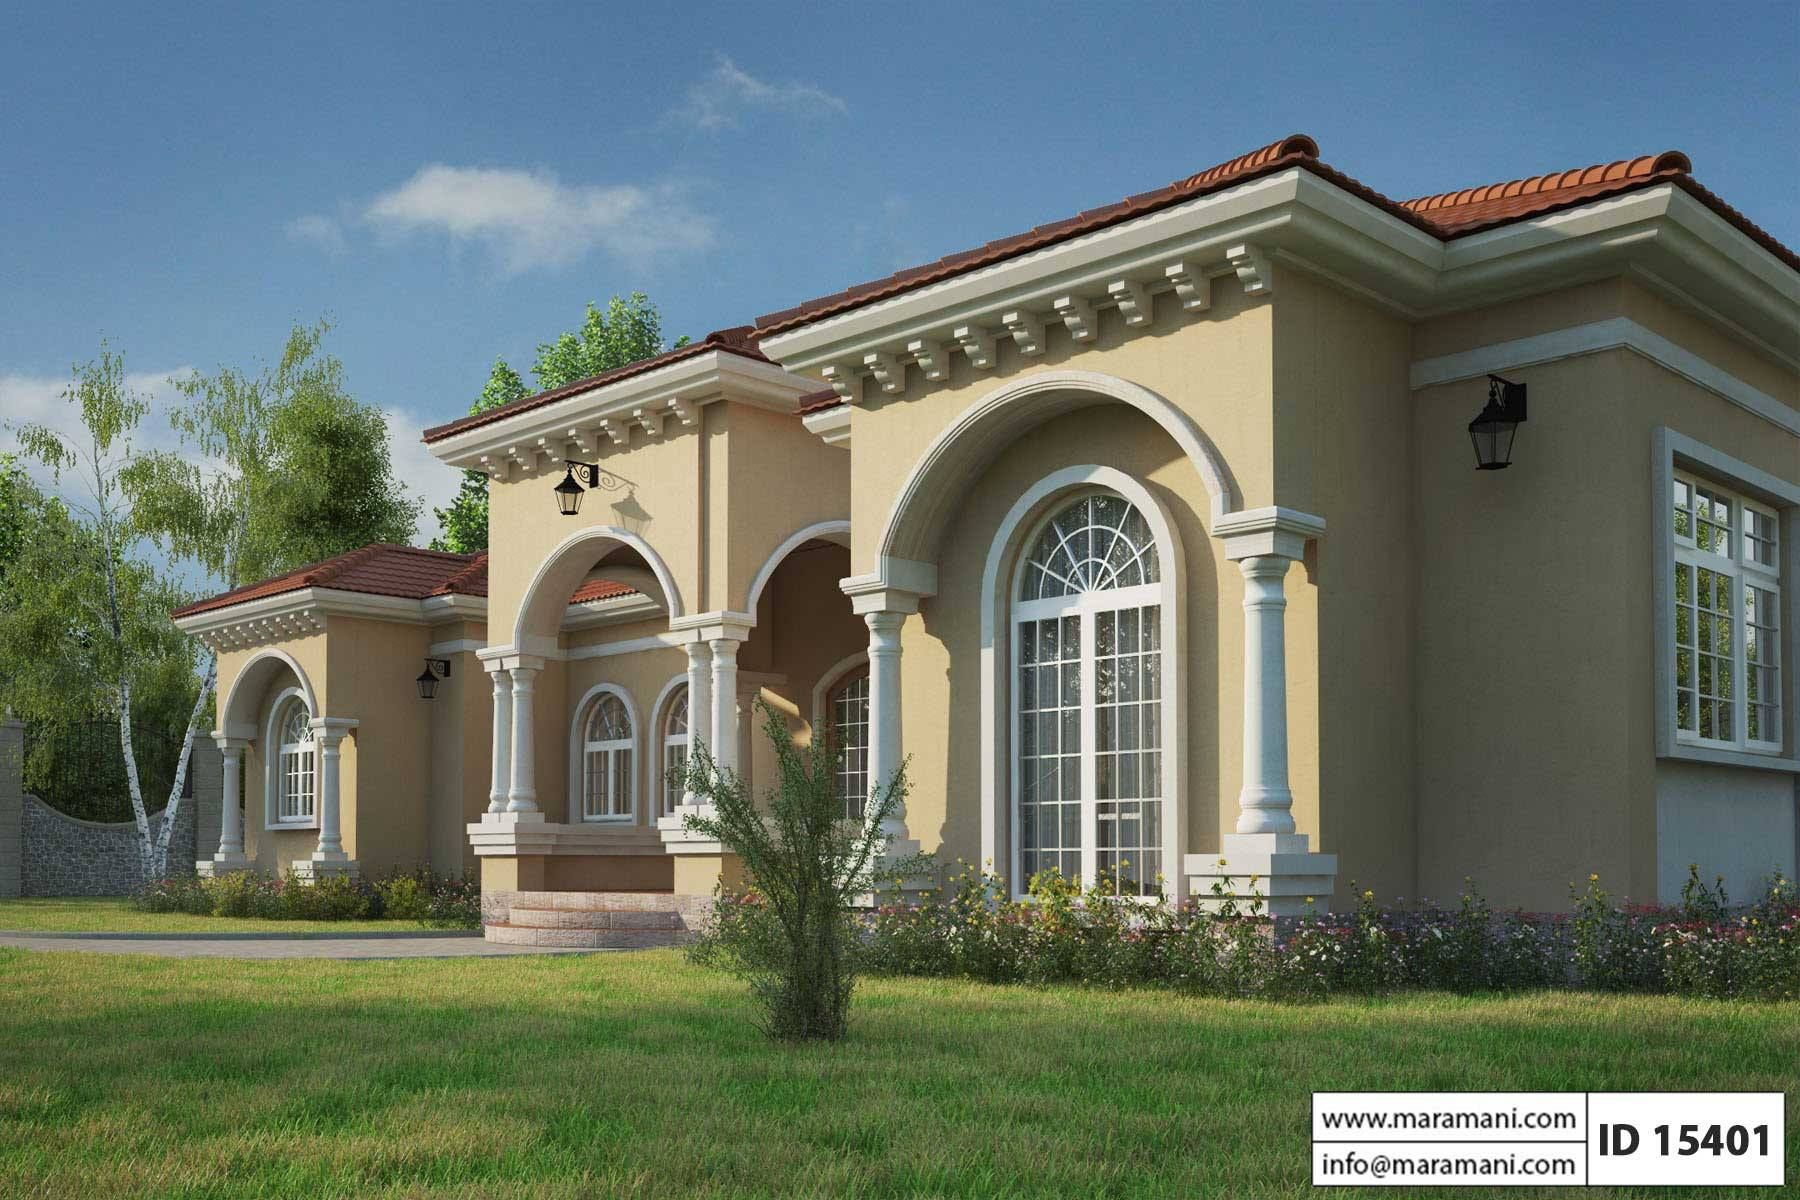 Mediterranean house plan id 15401 house designs by for Building a one room house